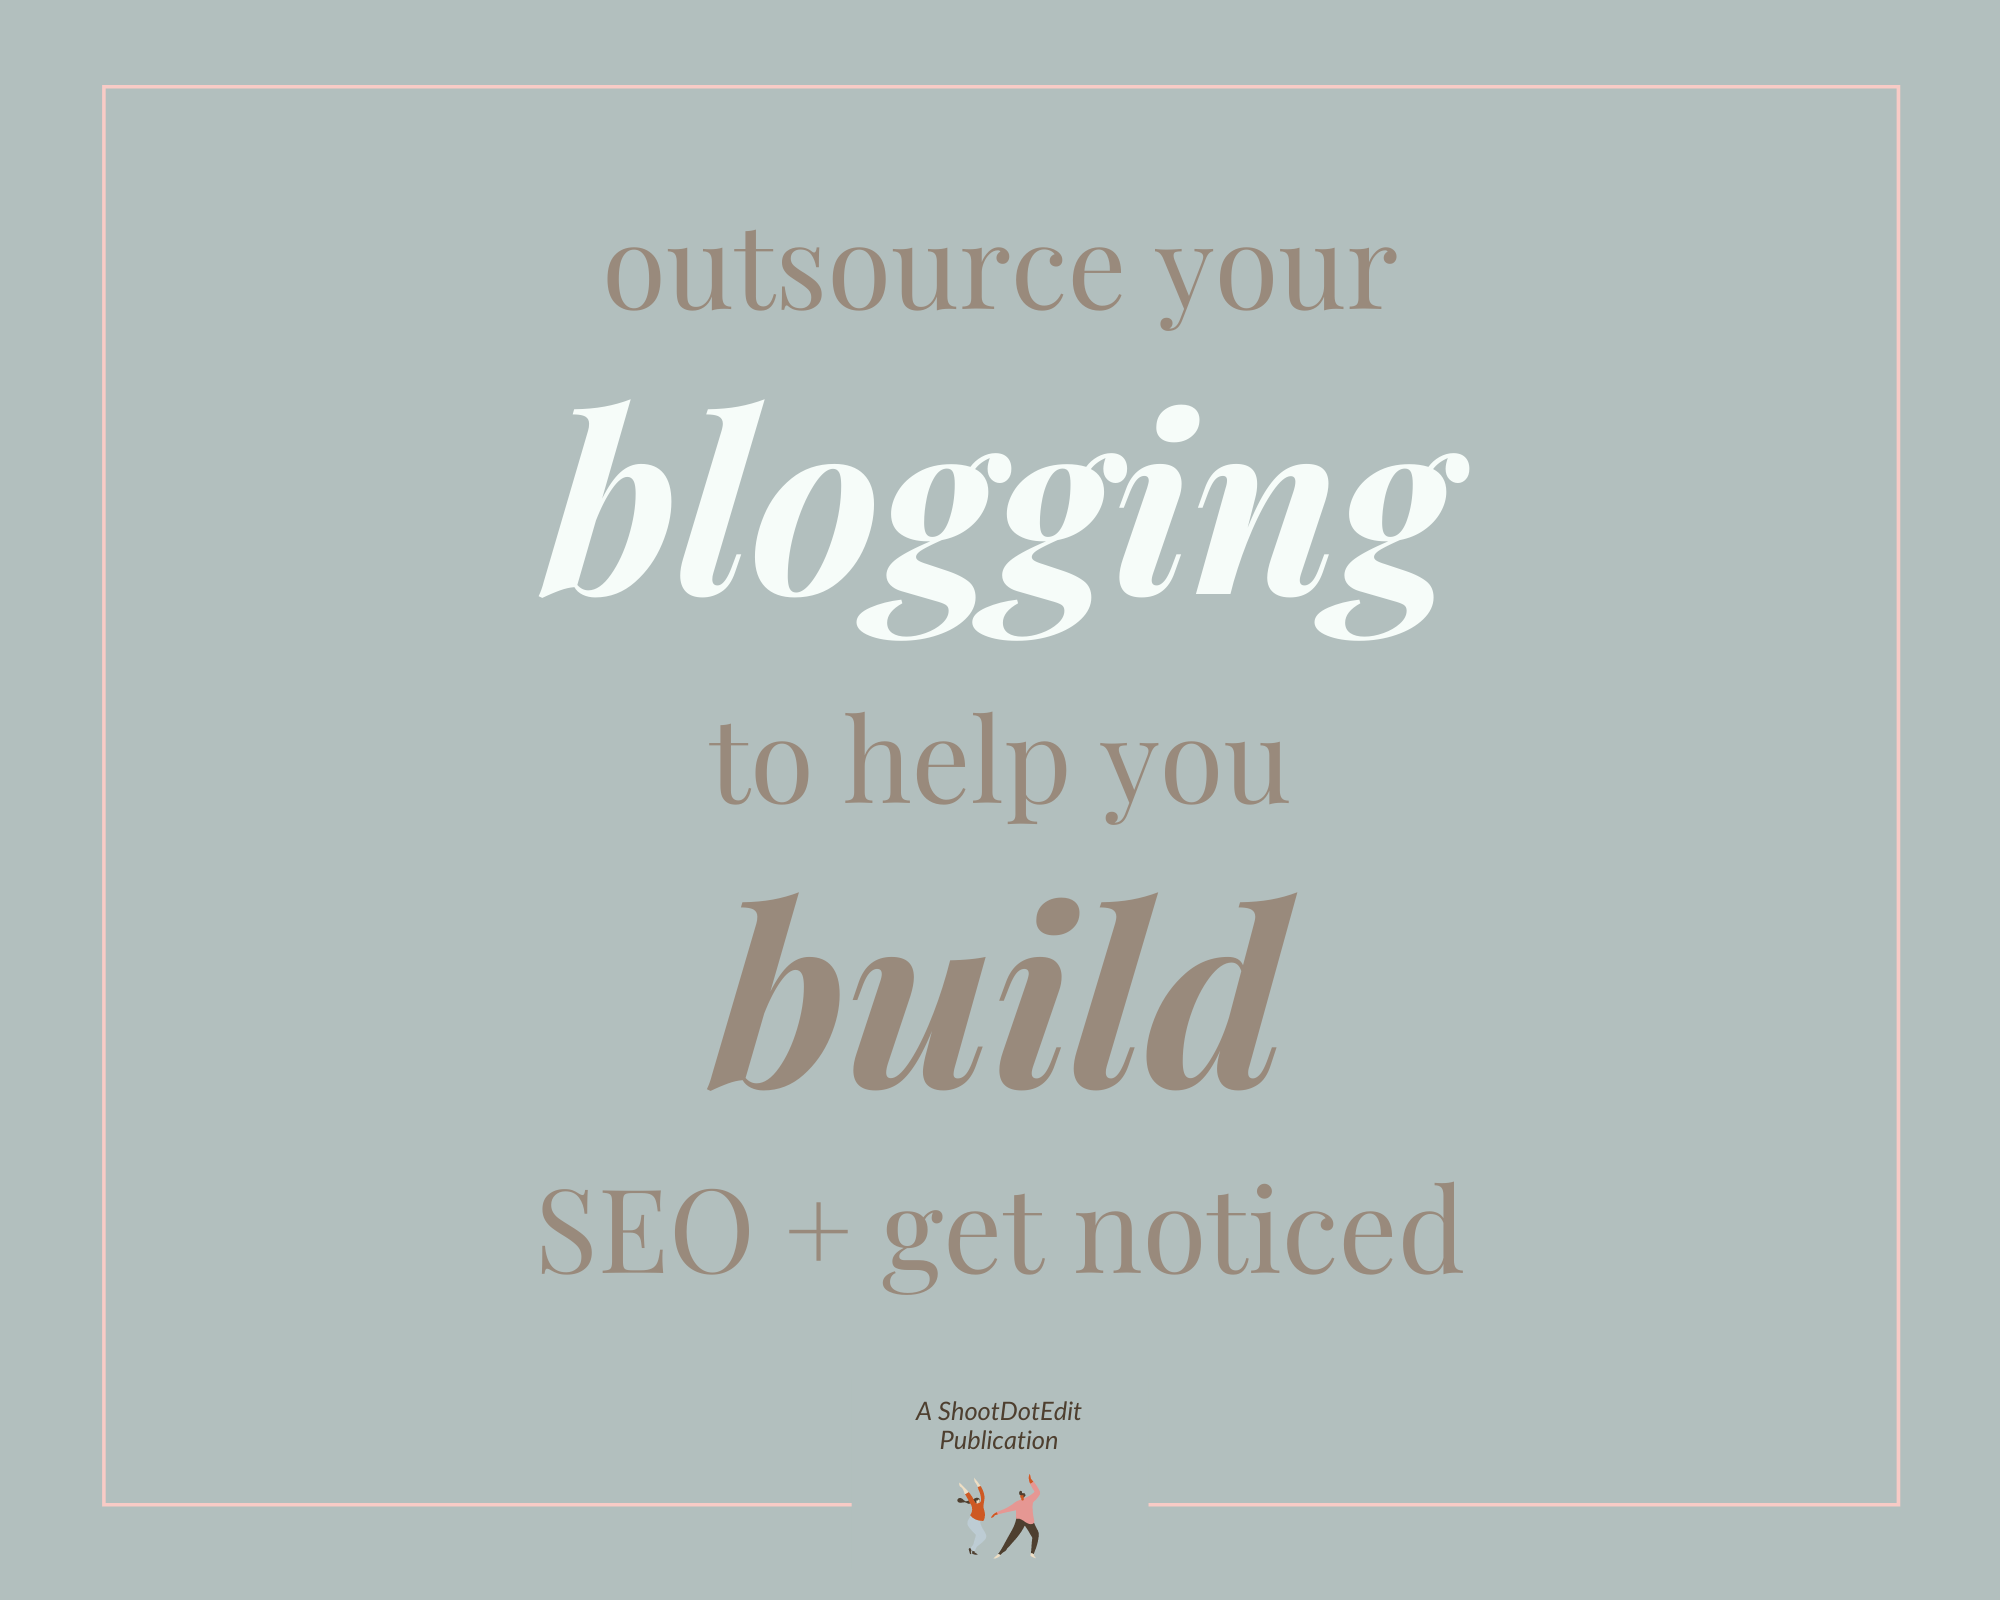 Infographic stating outsource your blogging to help you build SEO and get noticed